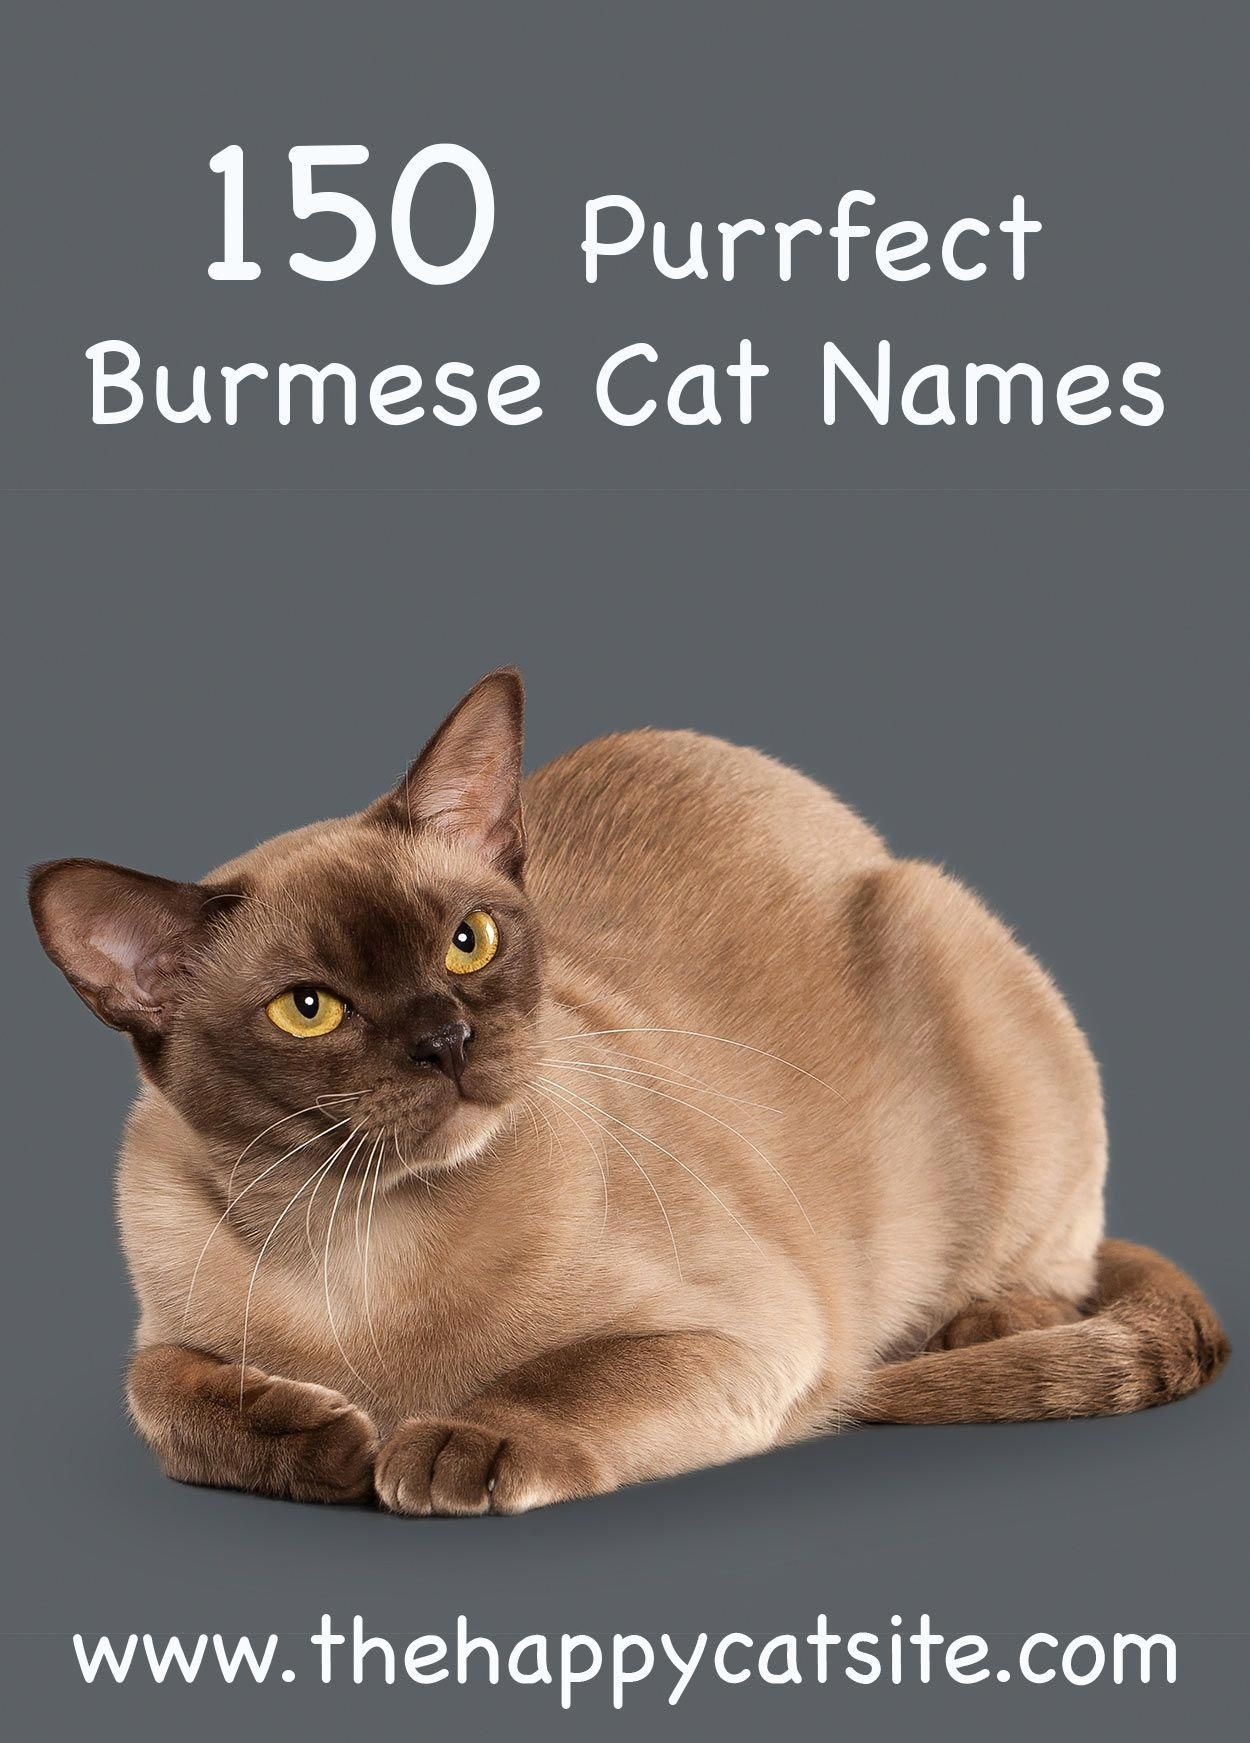 Burmese Cat Names Great Names To Call Your Cat Catfacts Burmese Cat Cat Names Cute Cat Names